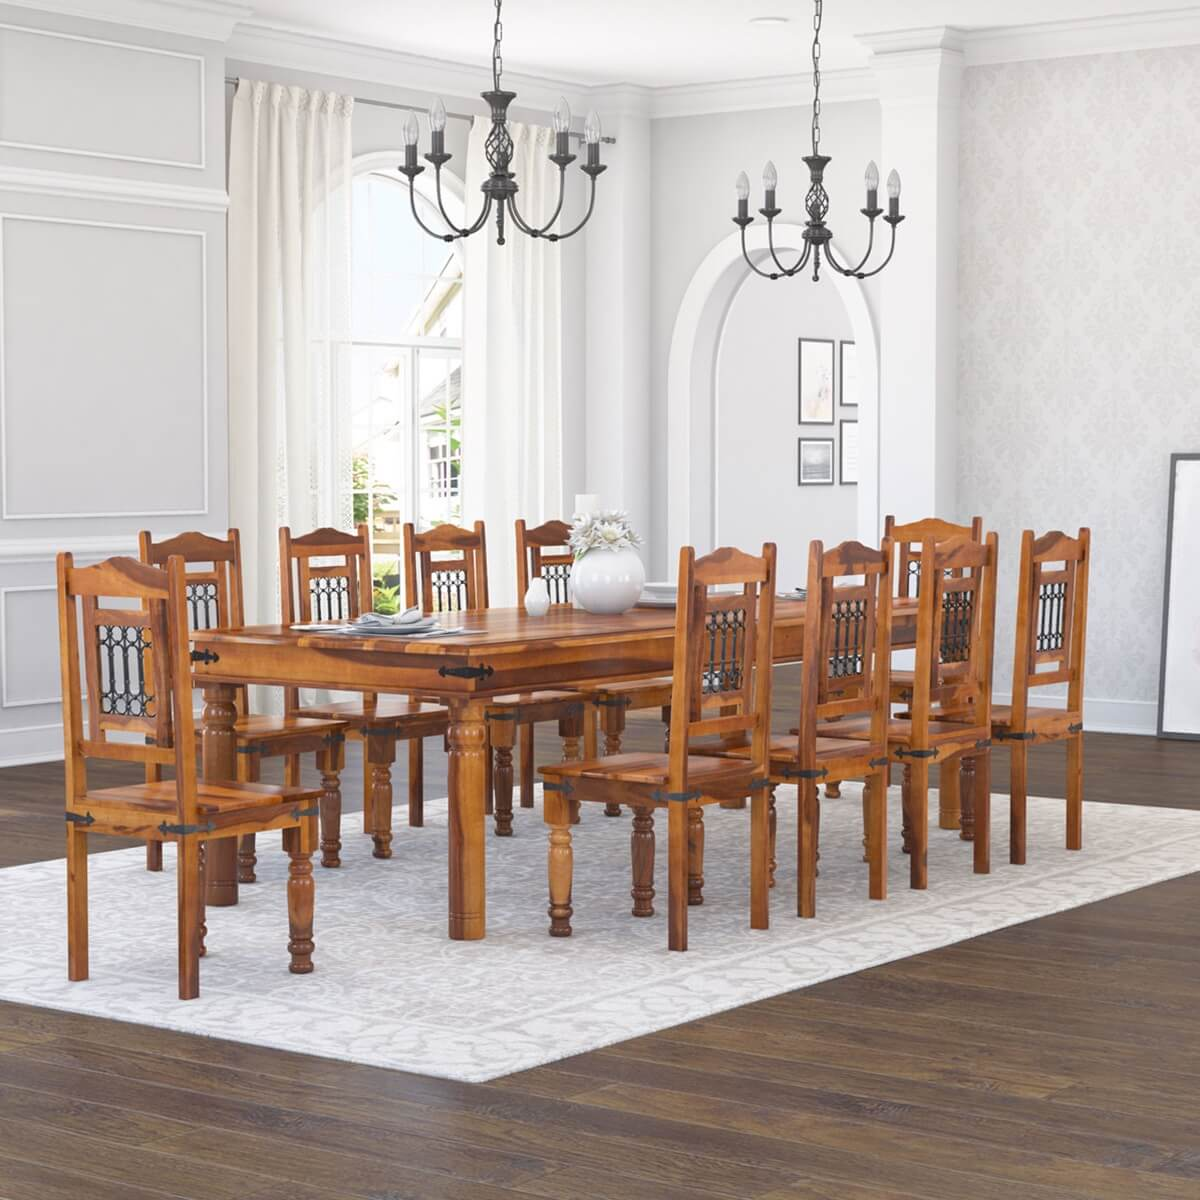 San Francisco Rustic Furniture Large Dining Table with 10 Chairs Set